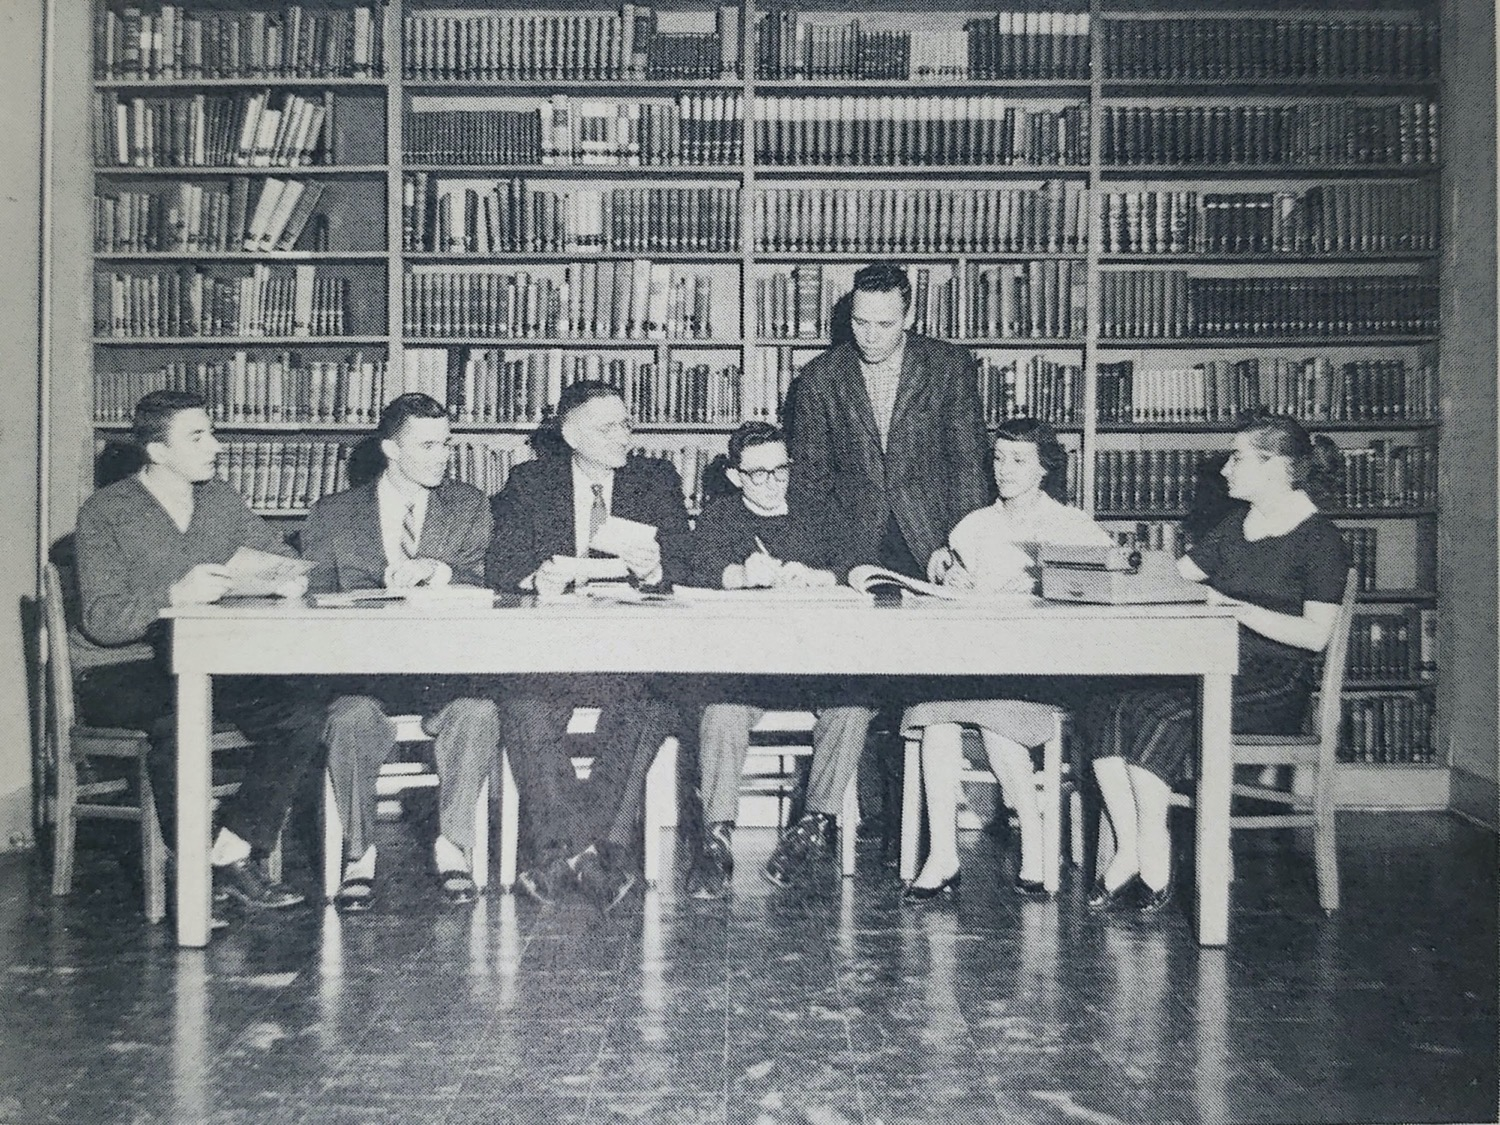 People in library sitting at table